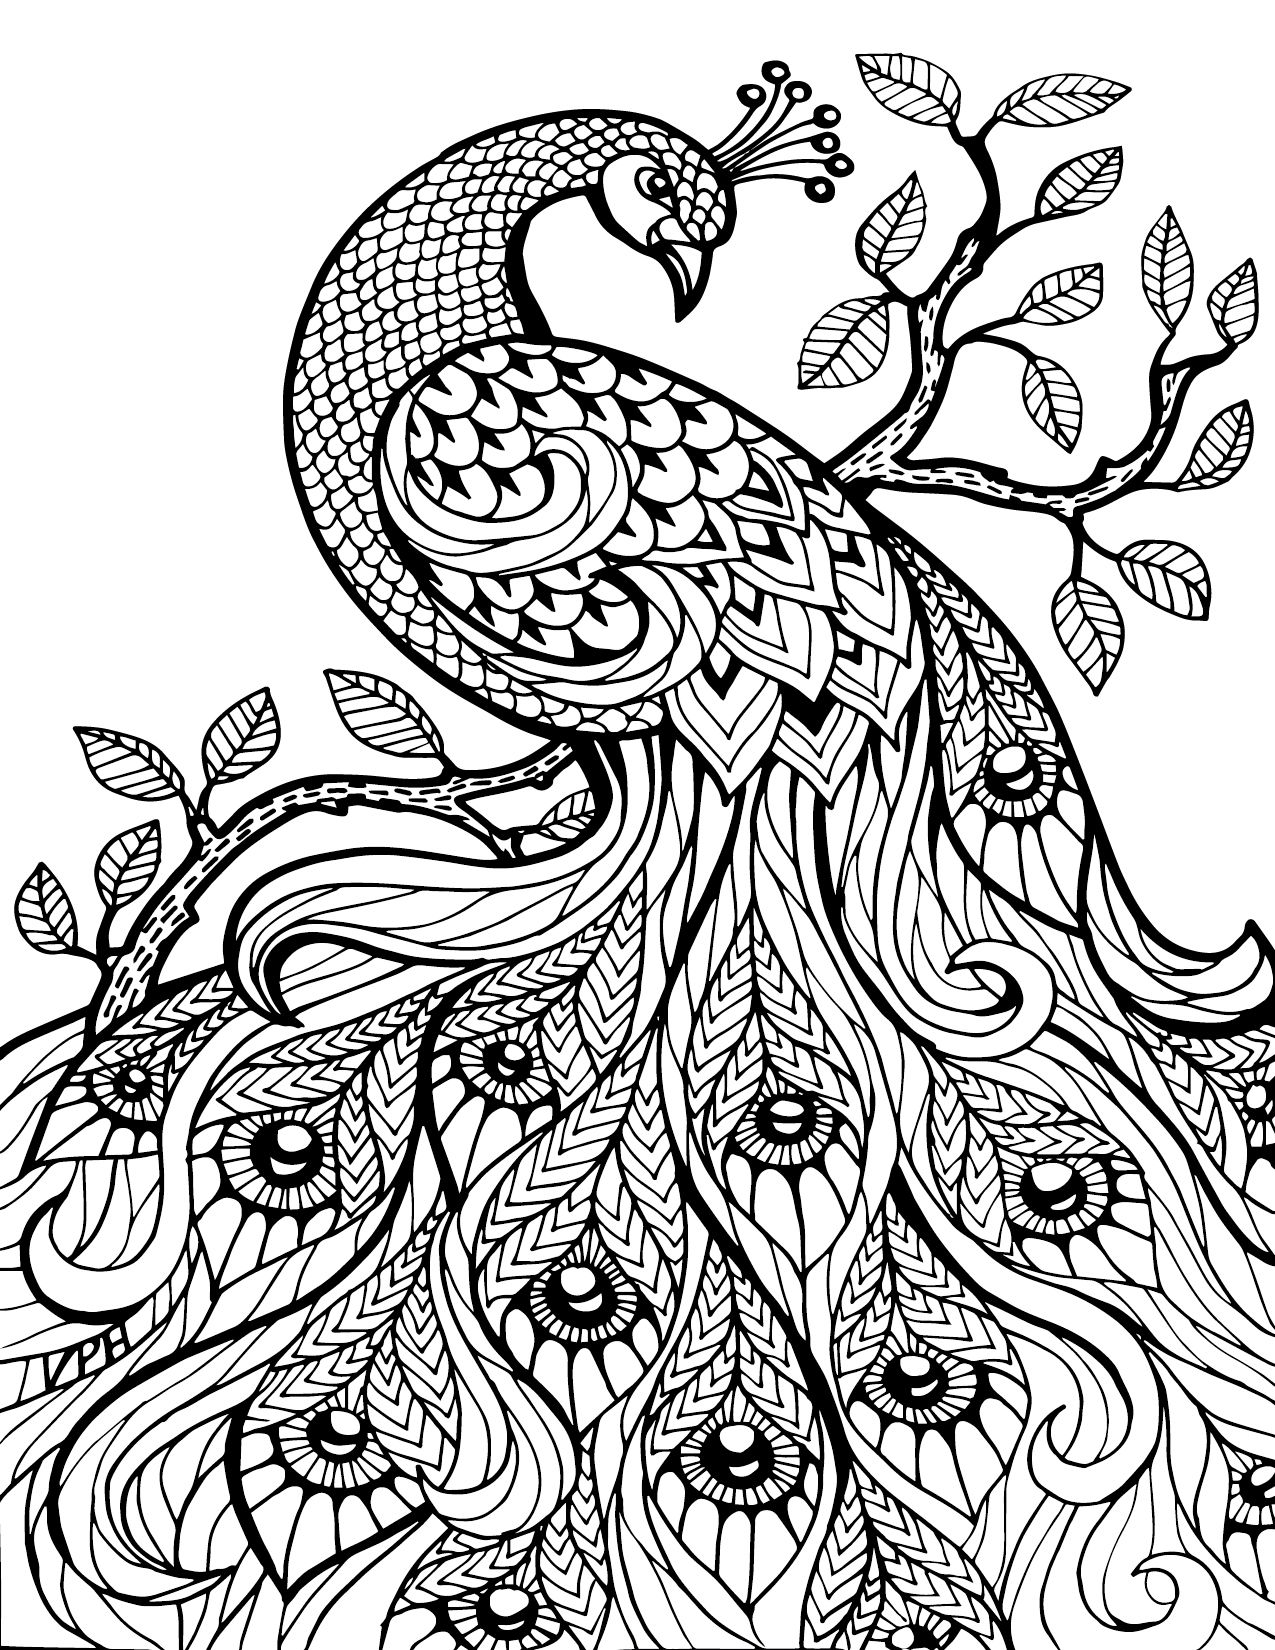 Adults colouring book pages - Free Printable Coloring Pages For Adults Only Image 36 Art Davlin Publishing